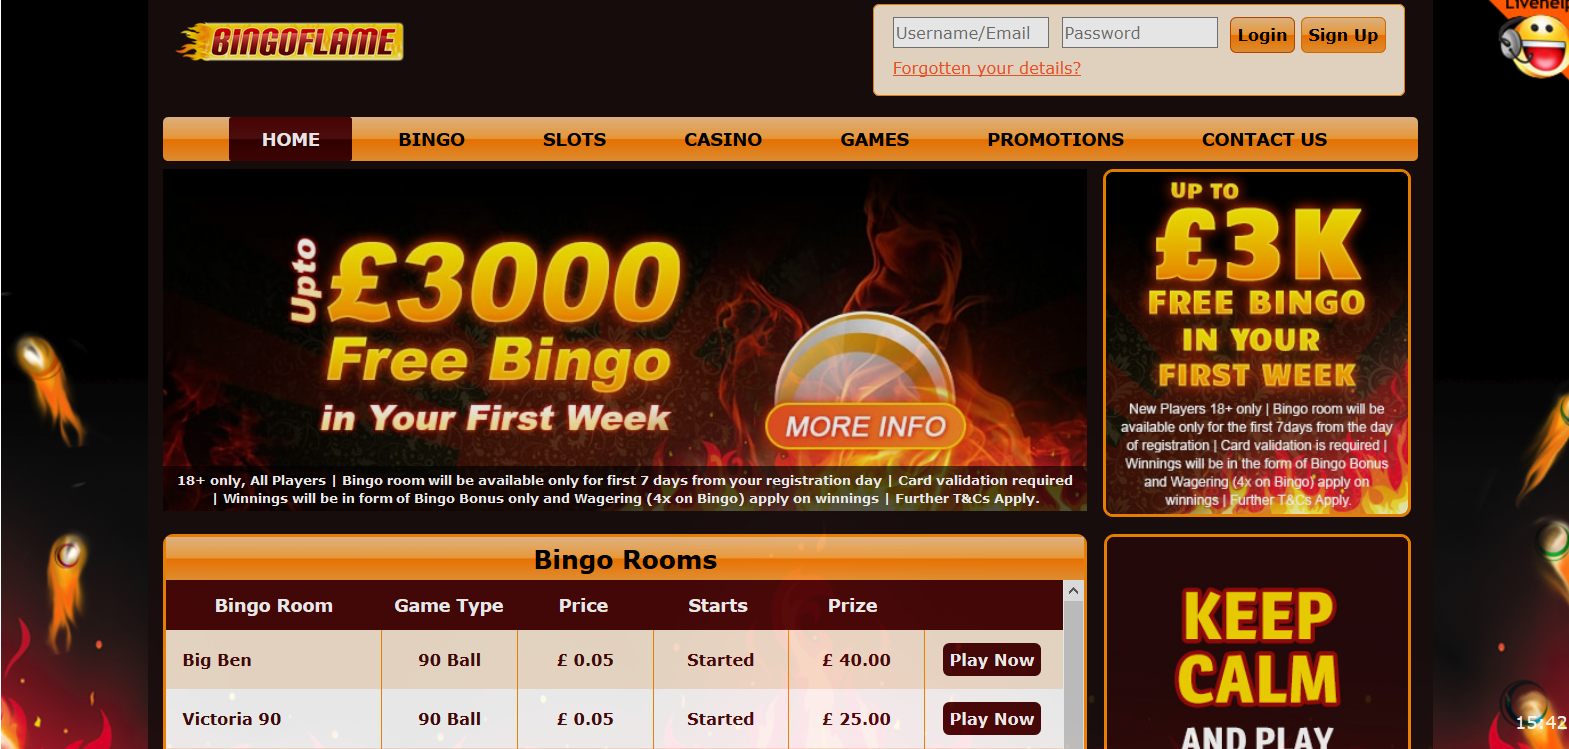 UK Bingo and Casino Games - Bingo Flame